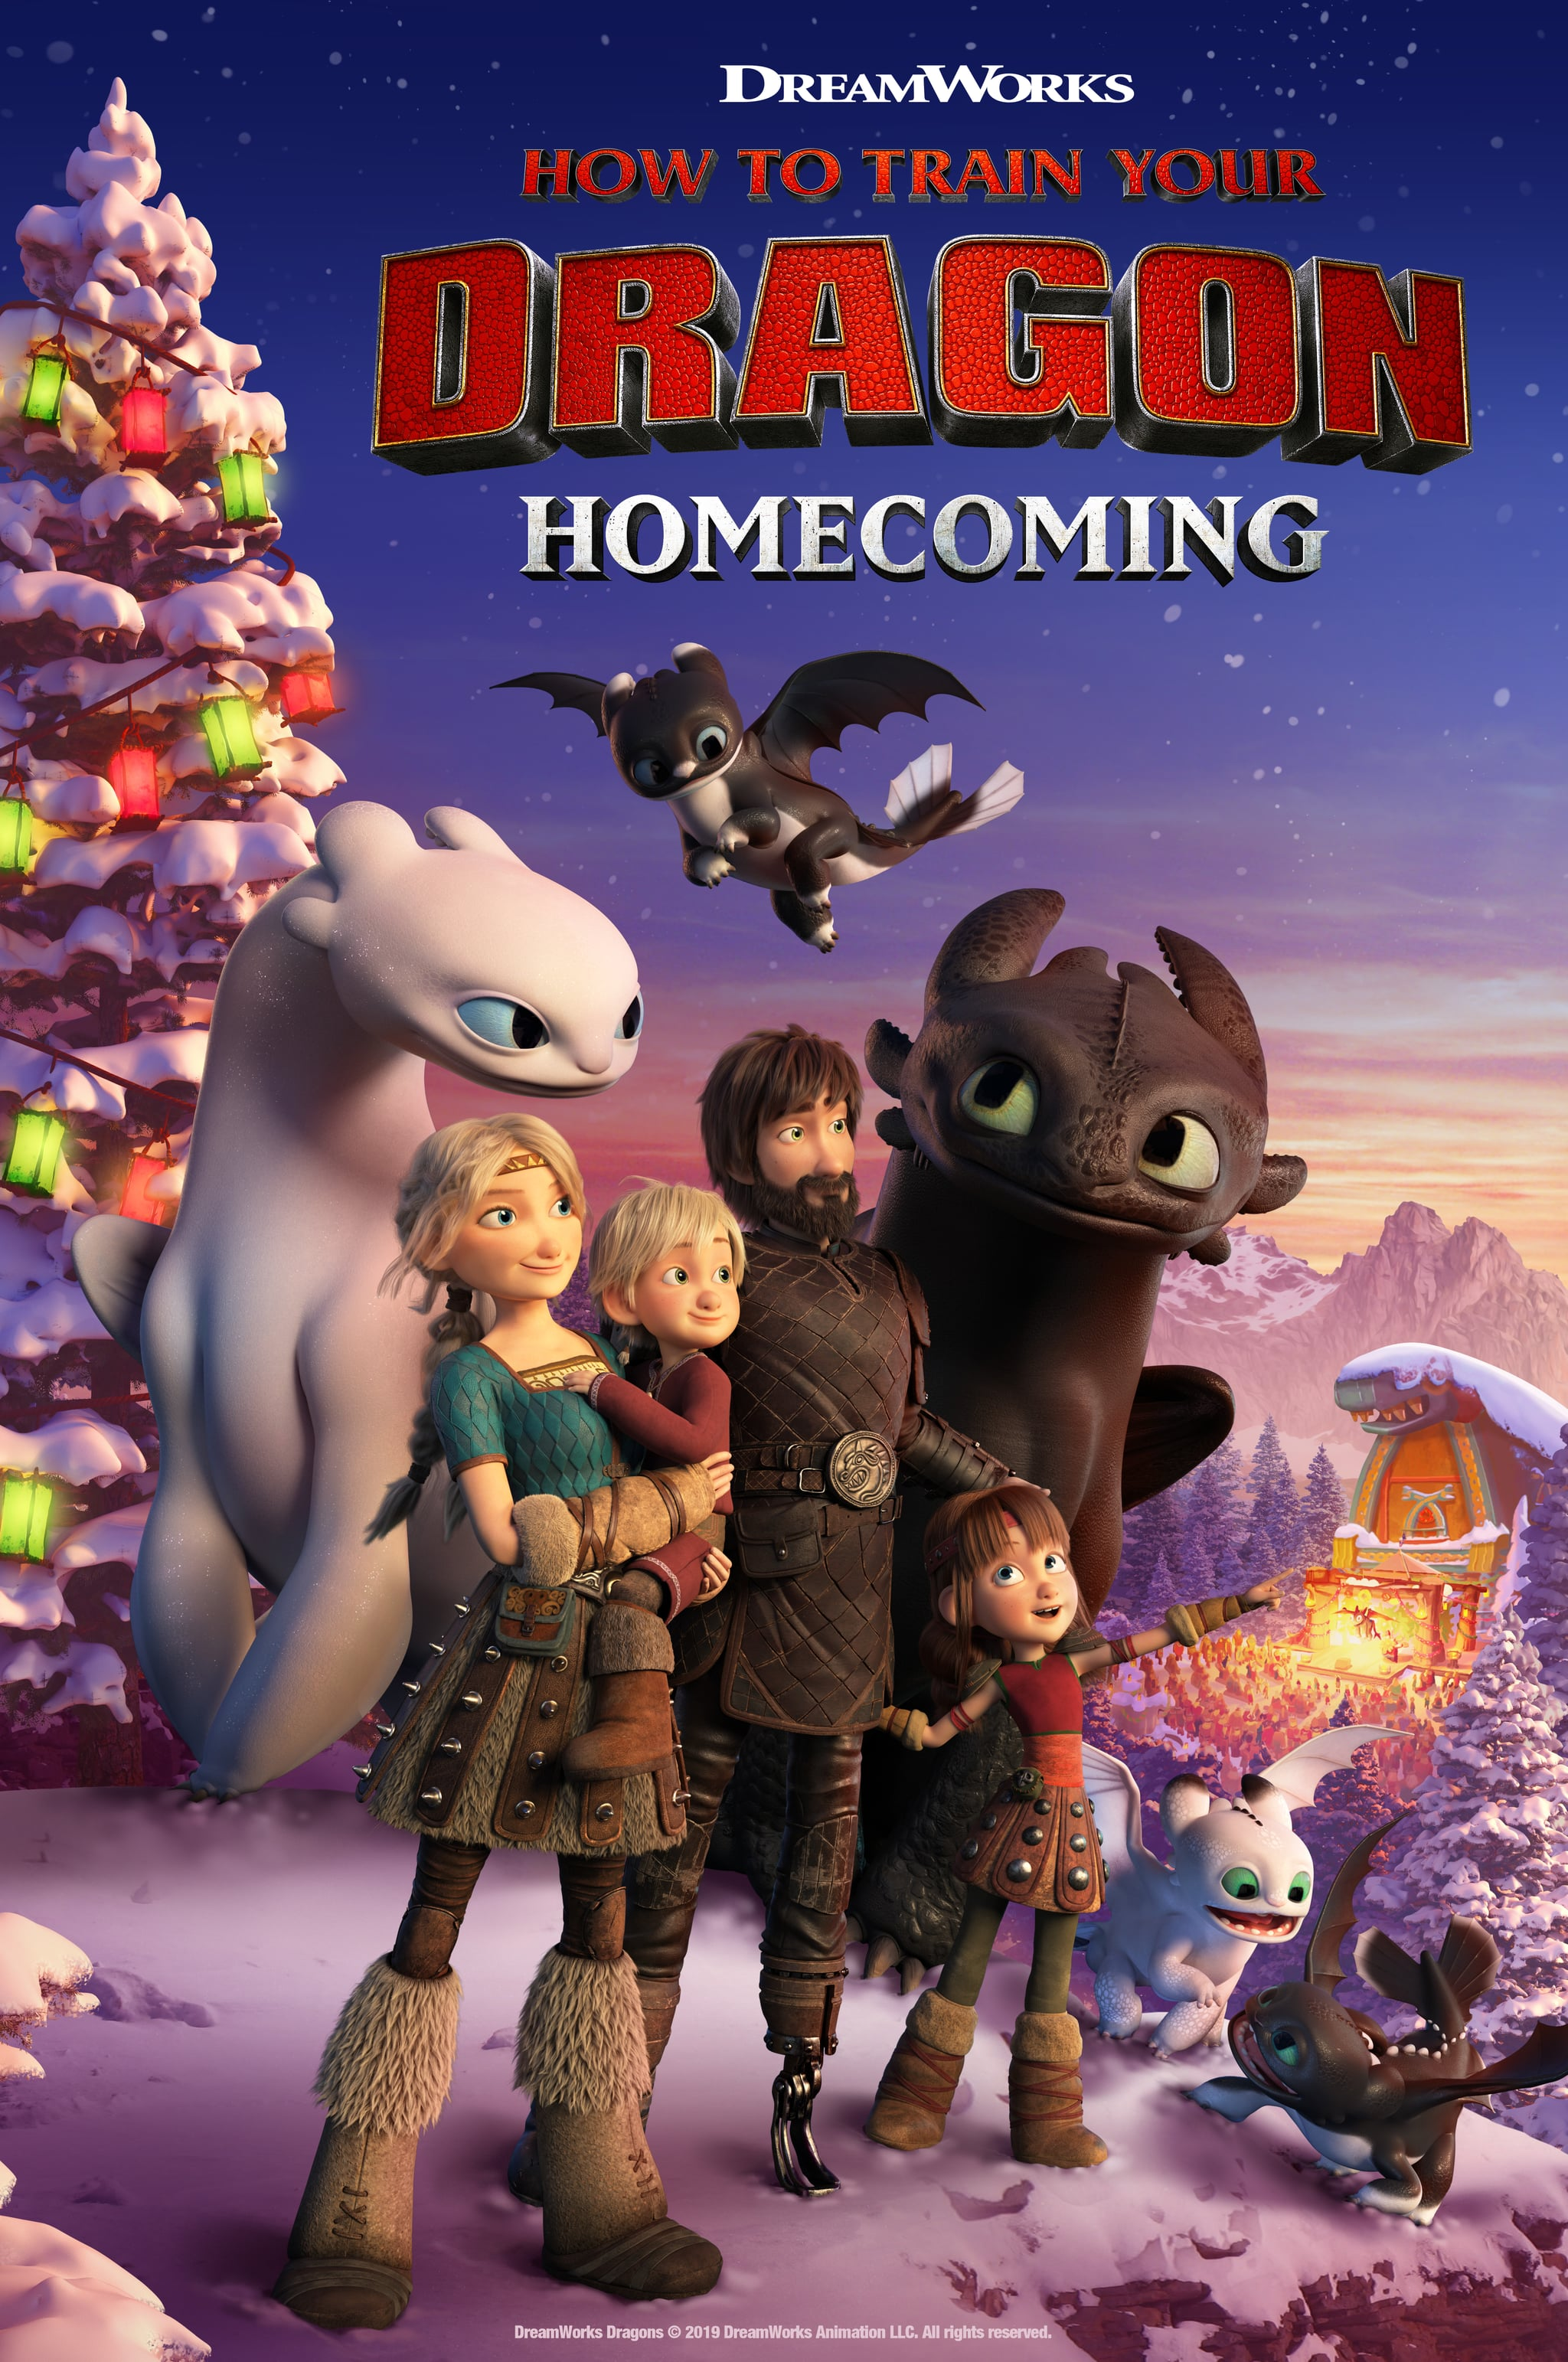 Nbc Christmas Specials 2019.How To Train Your Dragon Homecoming Holiday Special Details